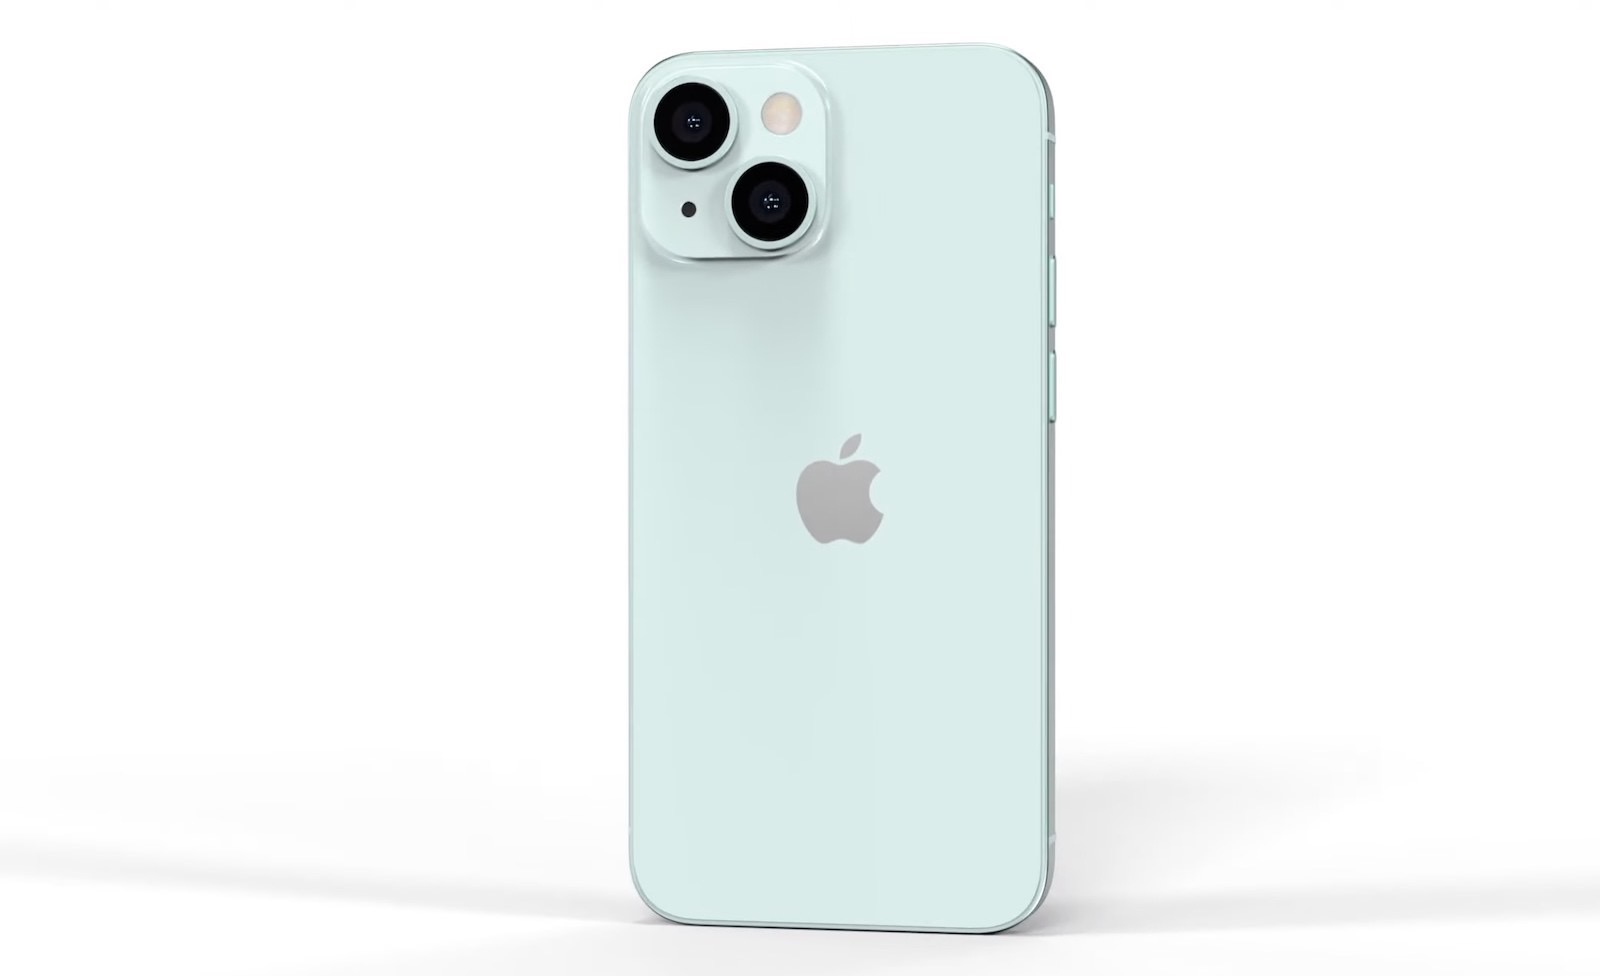 Iphone 13 mini rendering everything apple pro 1